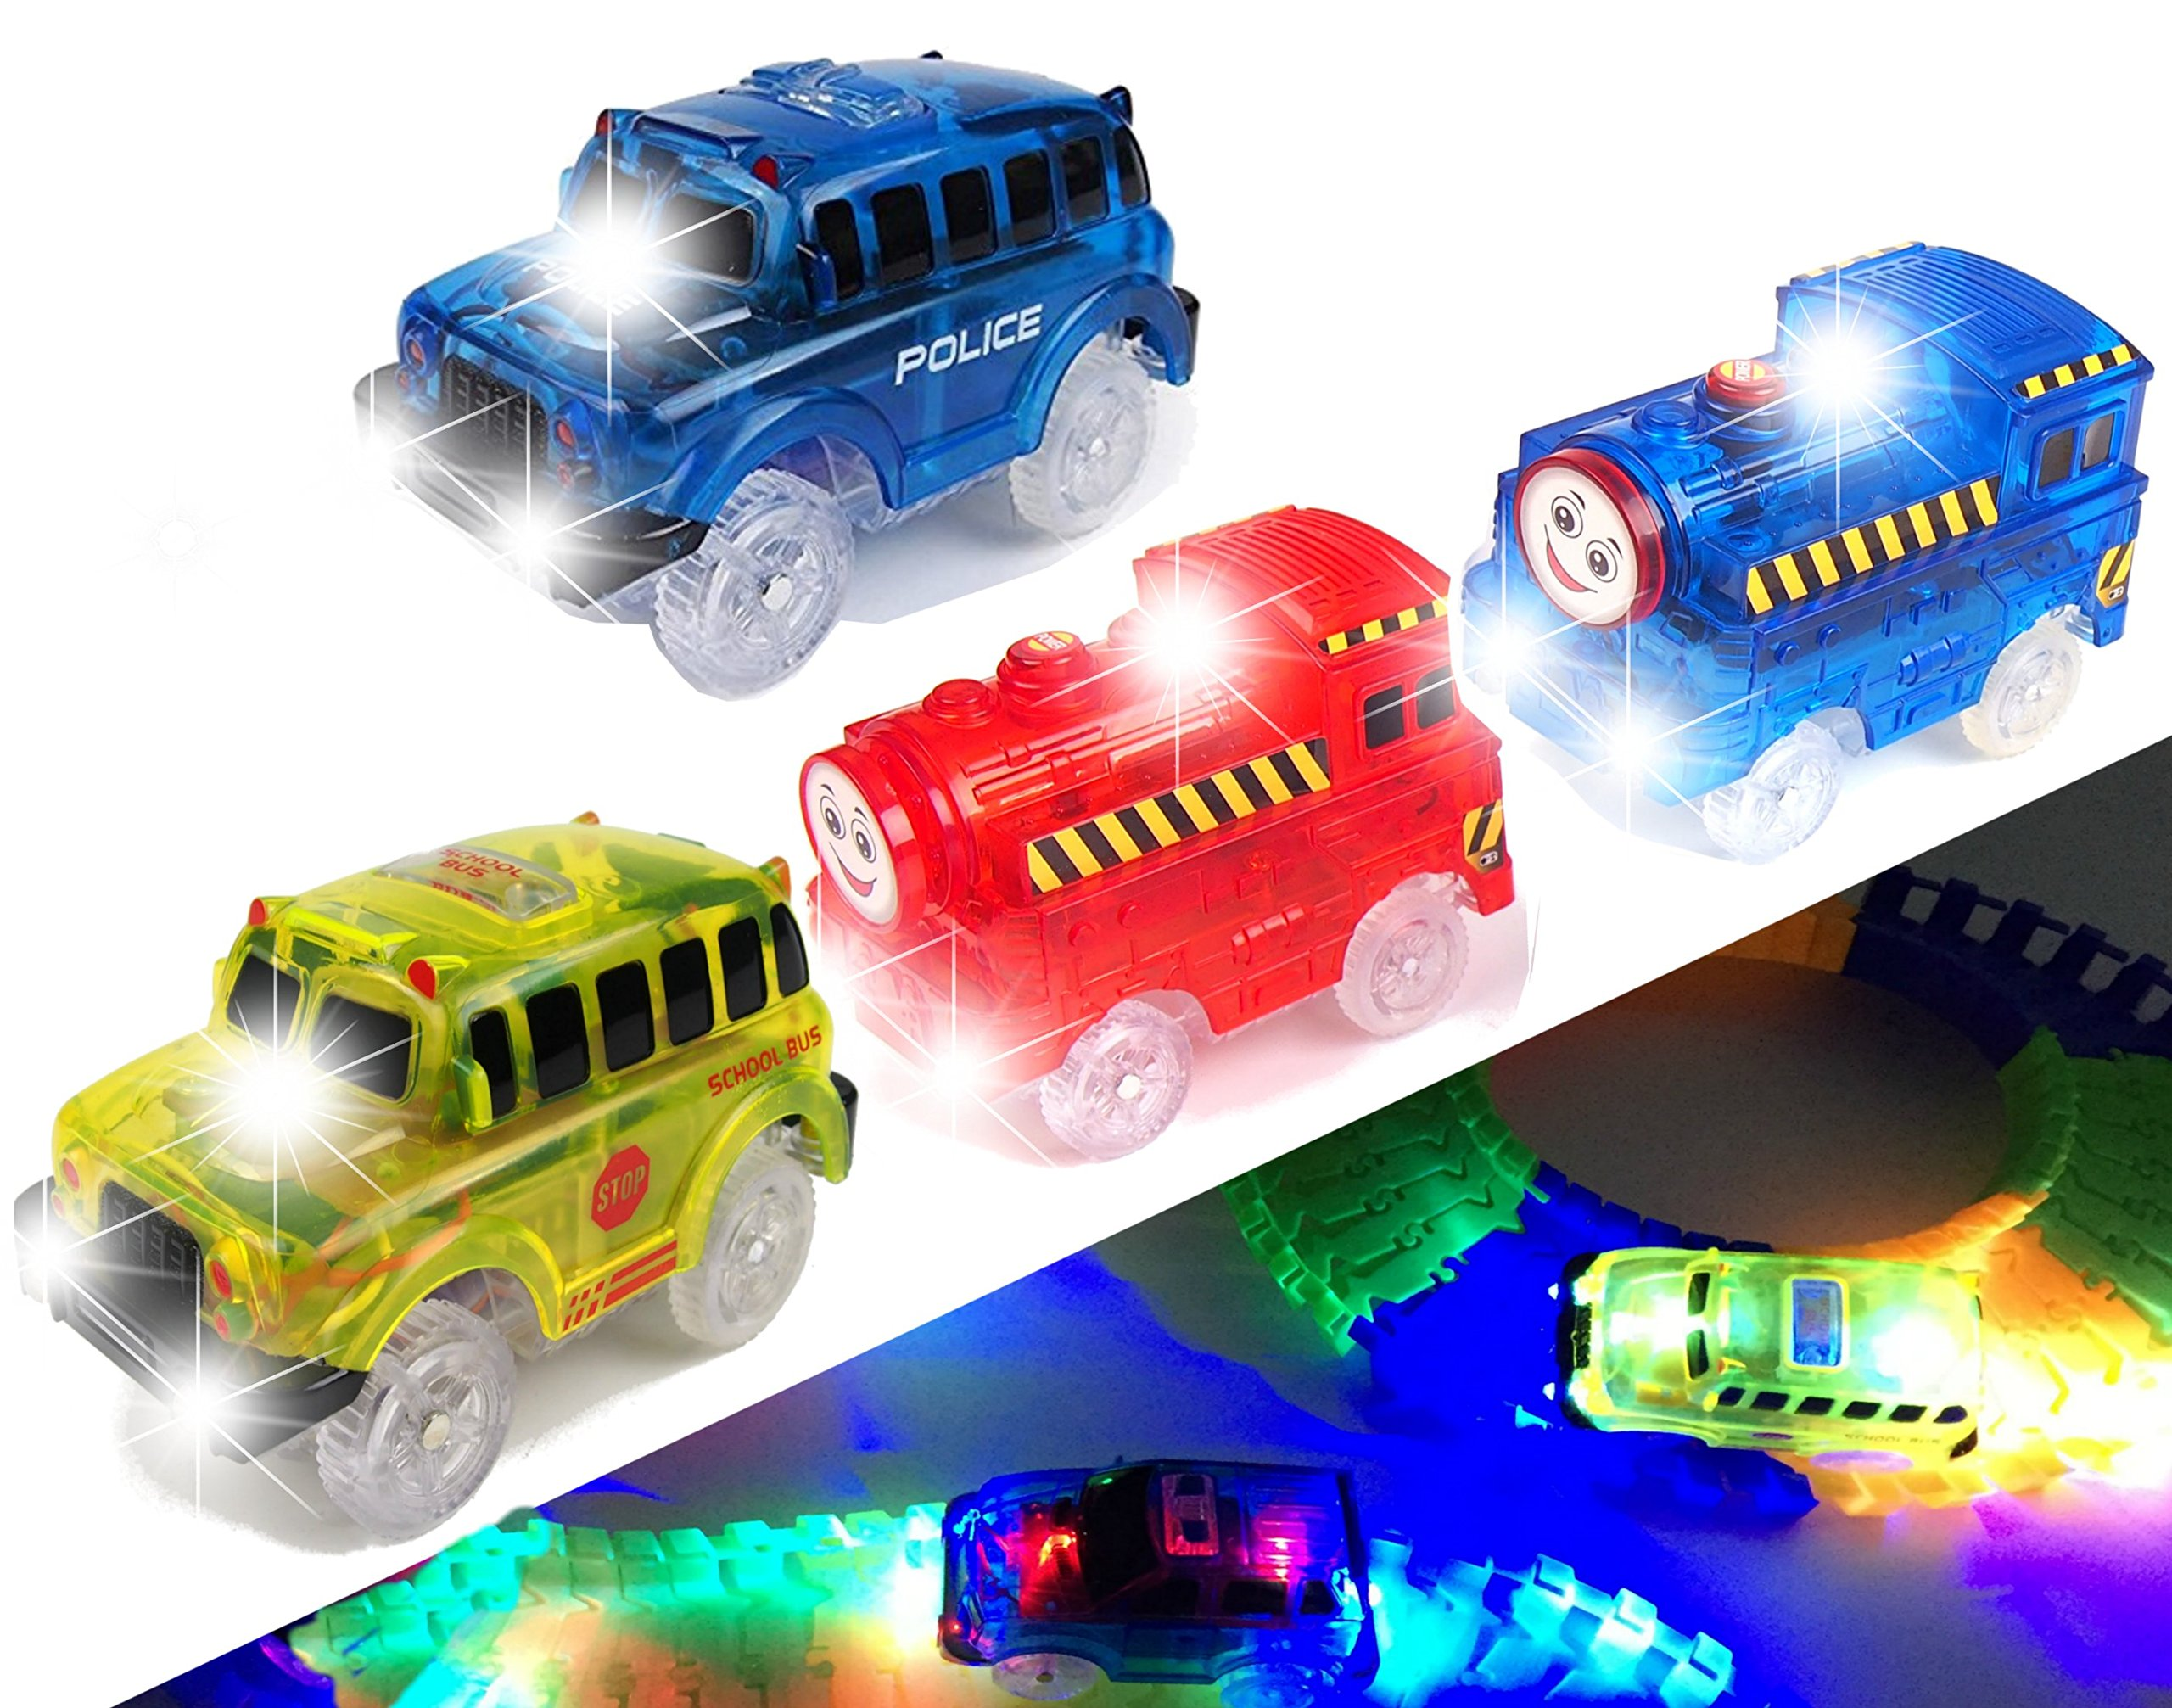 [4-Pack] Light Up Track Replacement Race Cars + Trains Toy | Glow in The Dark Racing Track | w/ 5 LED Lights | Independent & Track Play| Track Accessories Compatible with Most Tracks for Boys & Girls